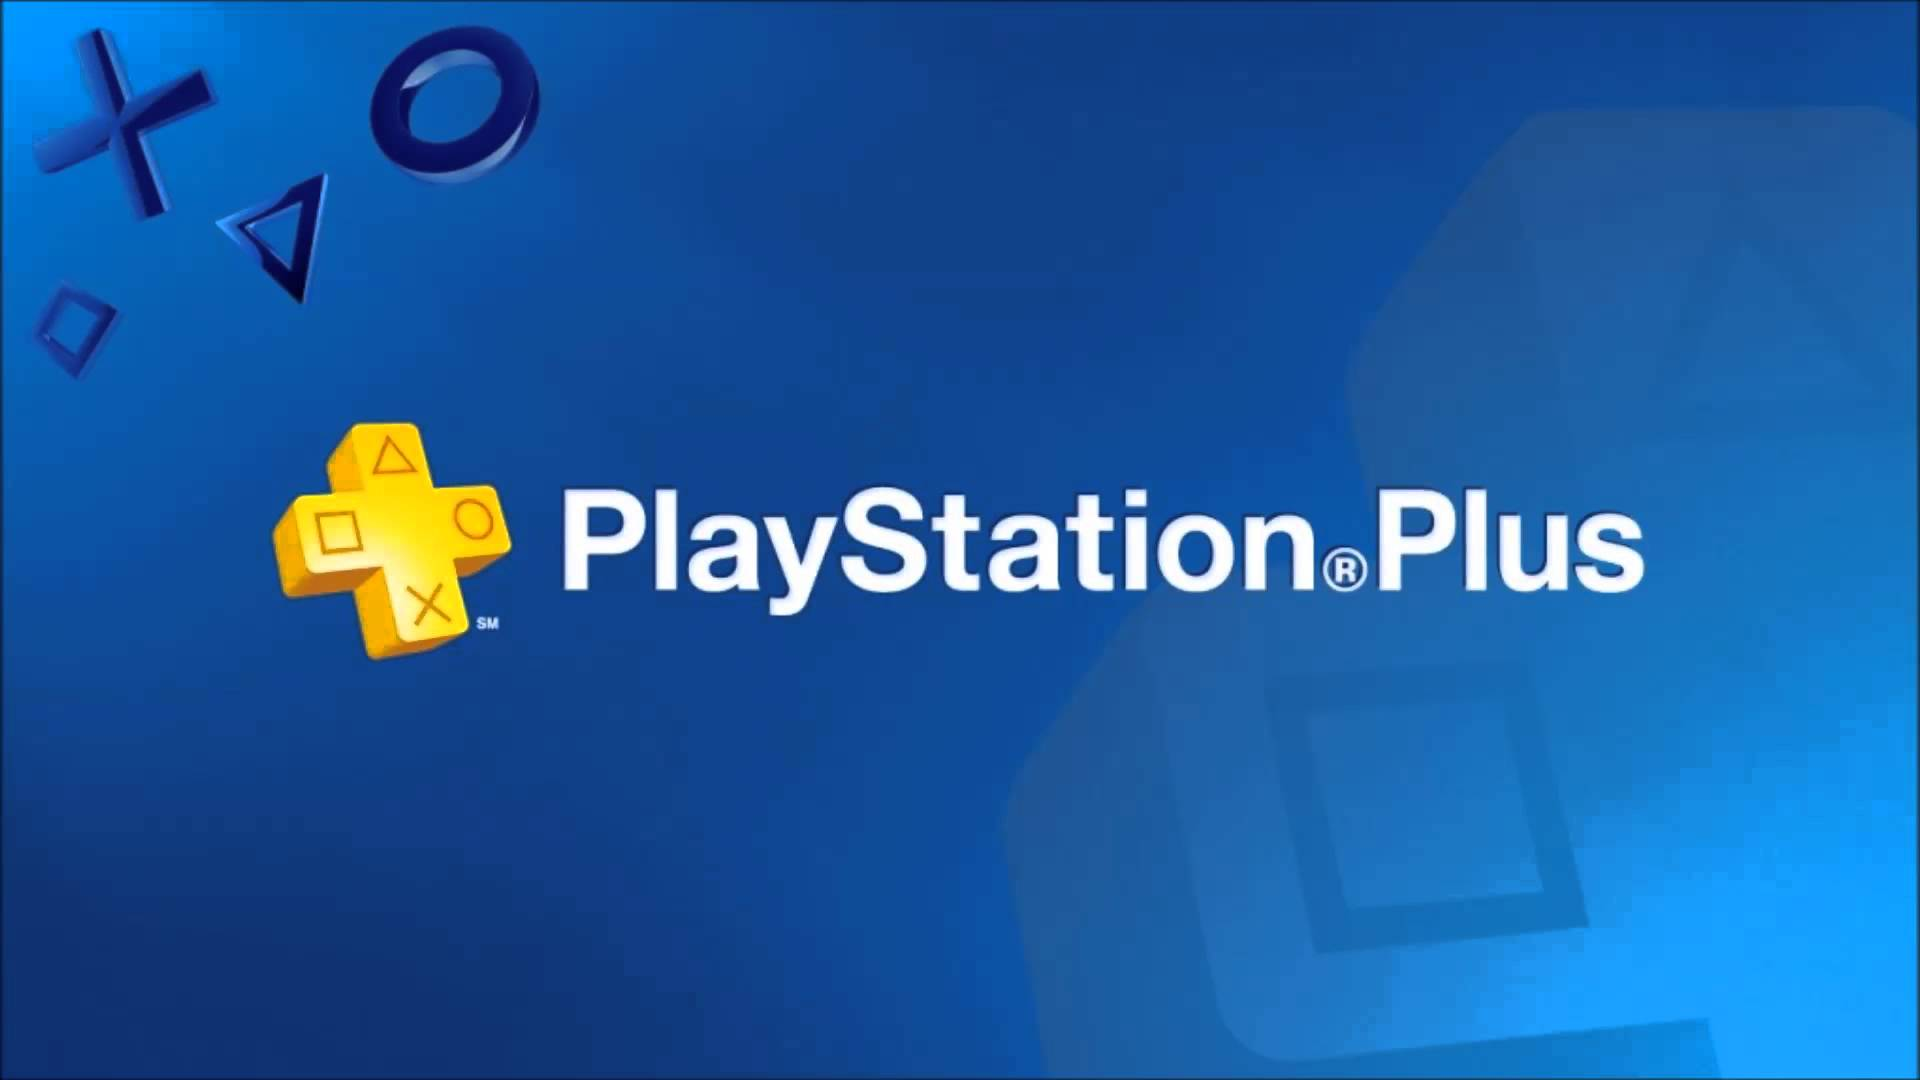 PlayStation Plus Free Games March 2021 to Include Final Fantasy 7 Remake, Remnant From the Ashes & More (Update)